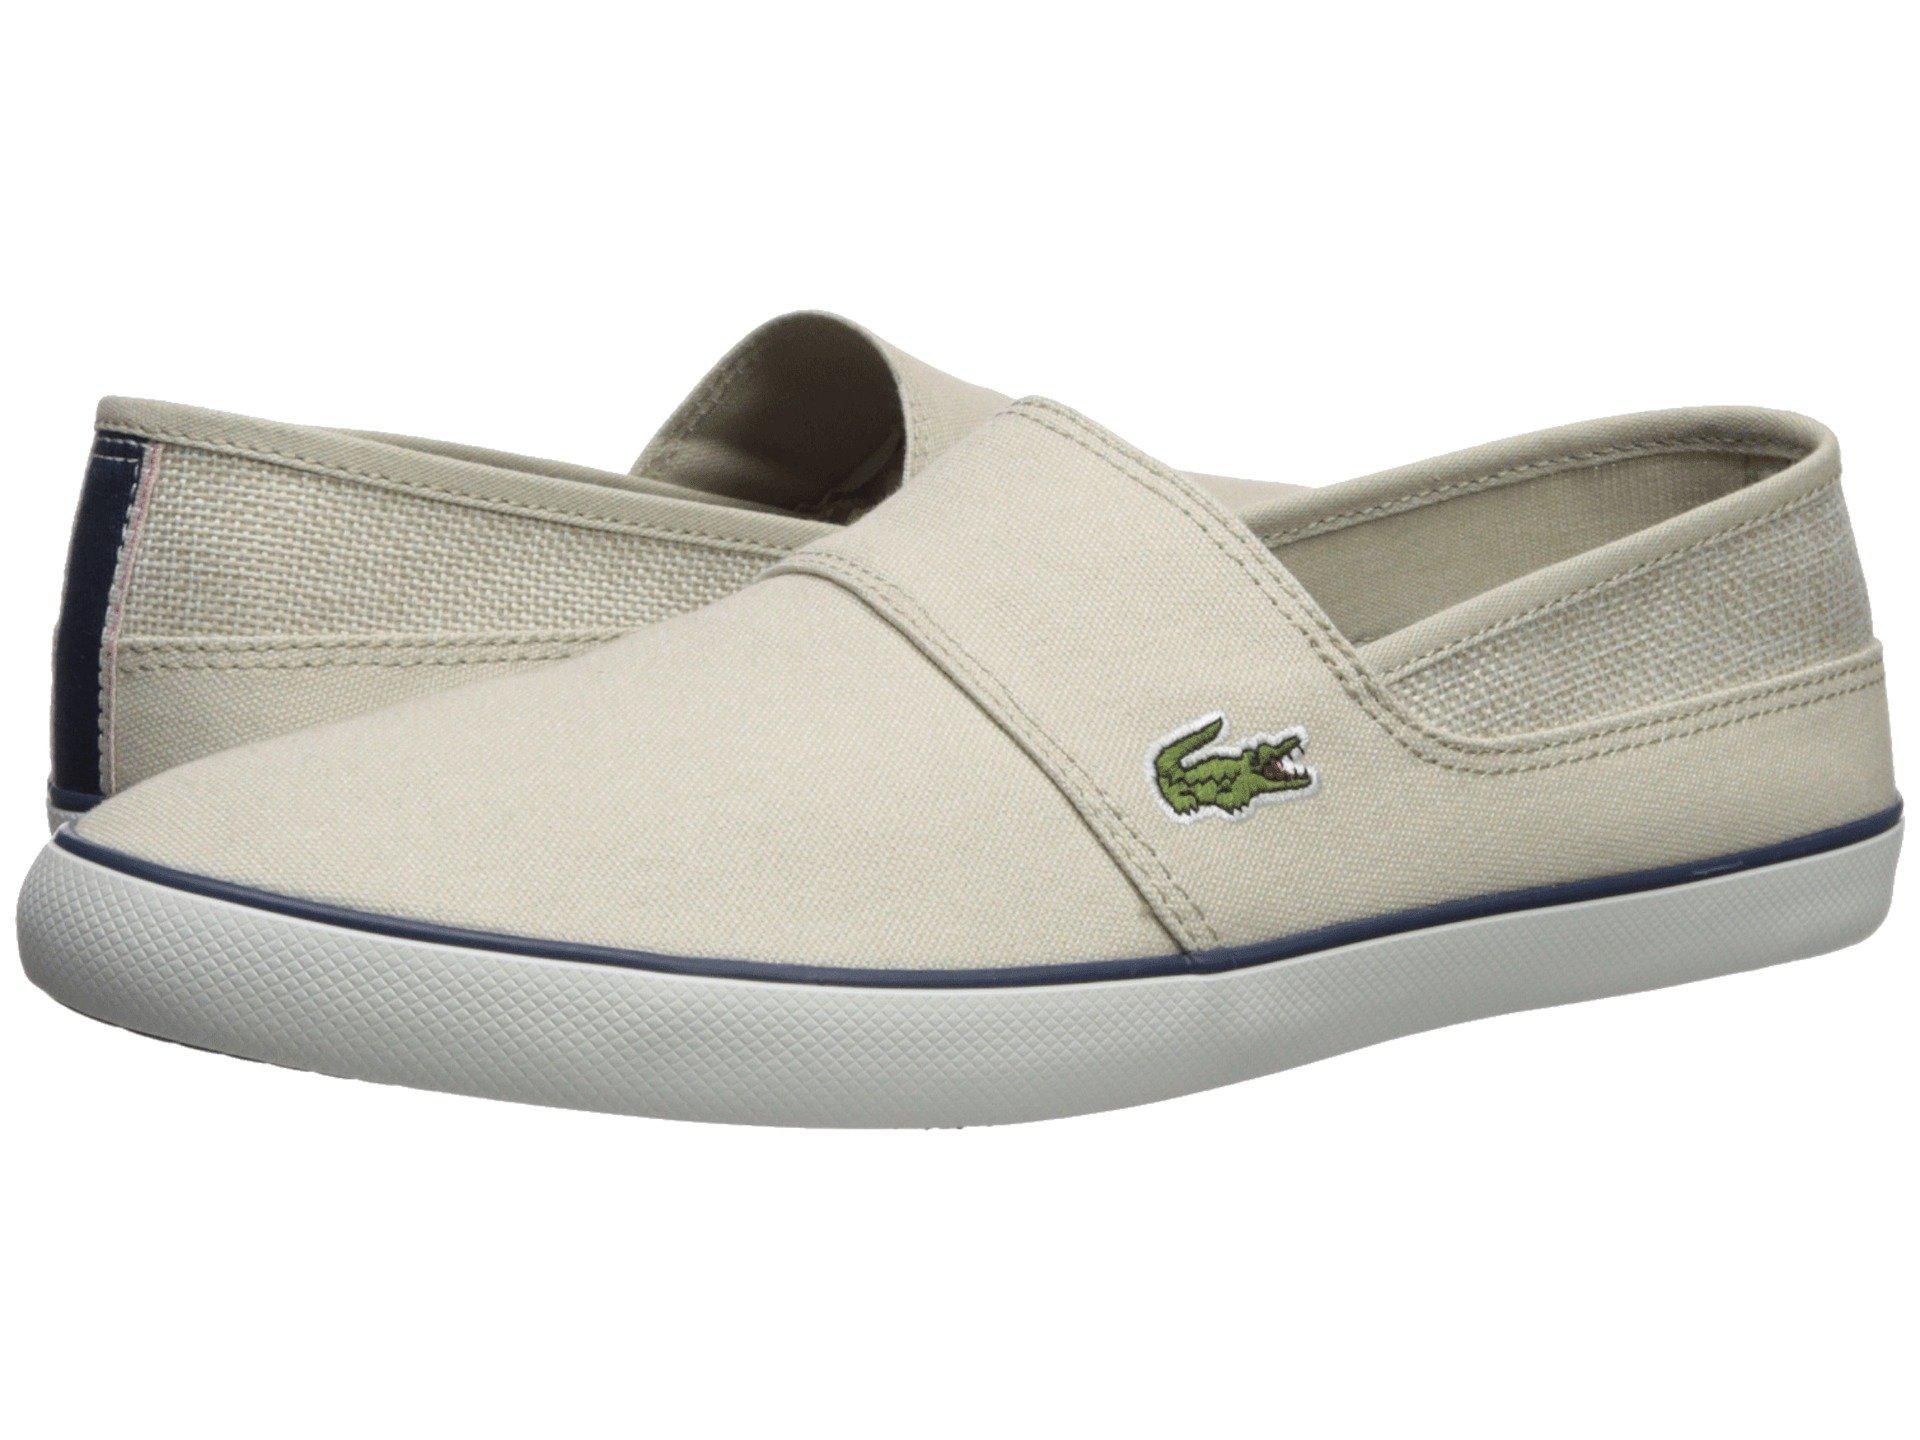 16d3939ad8840 Lyst - Lacoste Marice 218 1 (blue natural) Men s Shoes in Natural ...